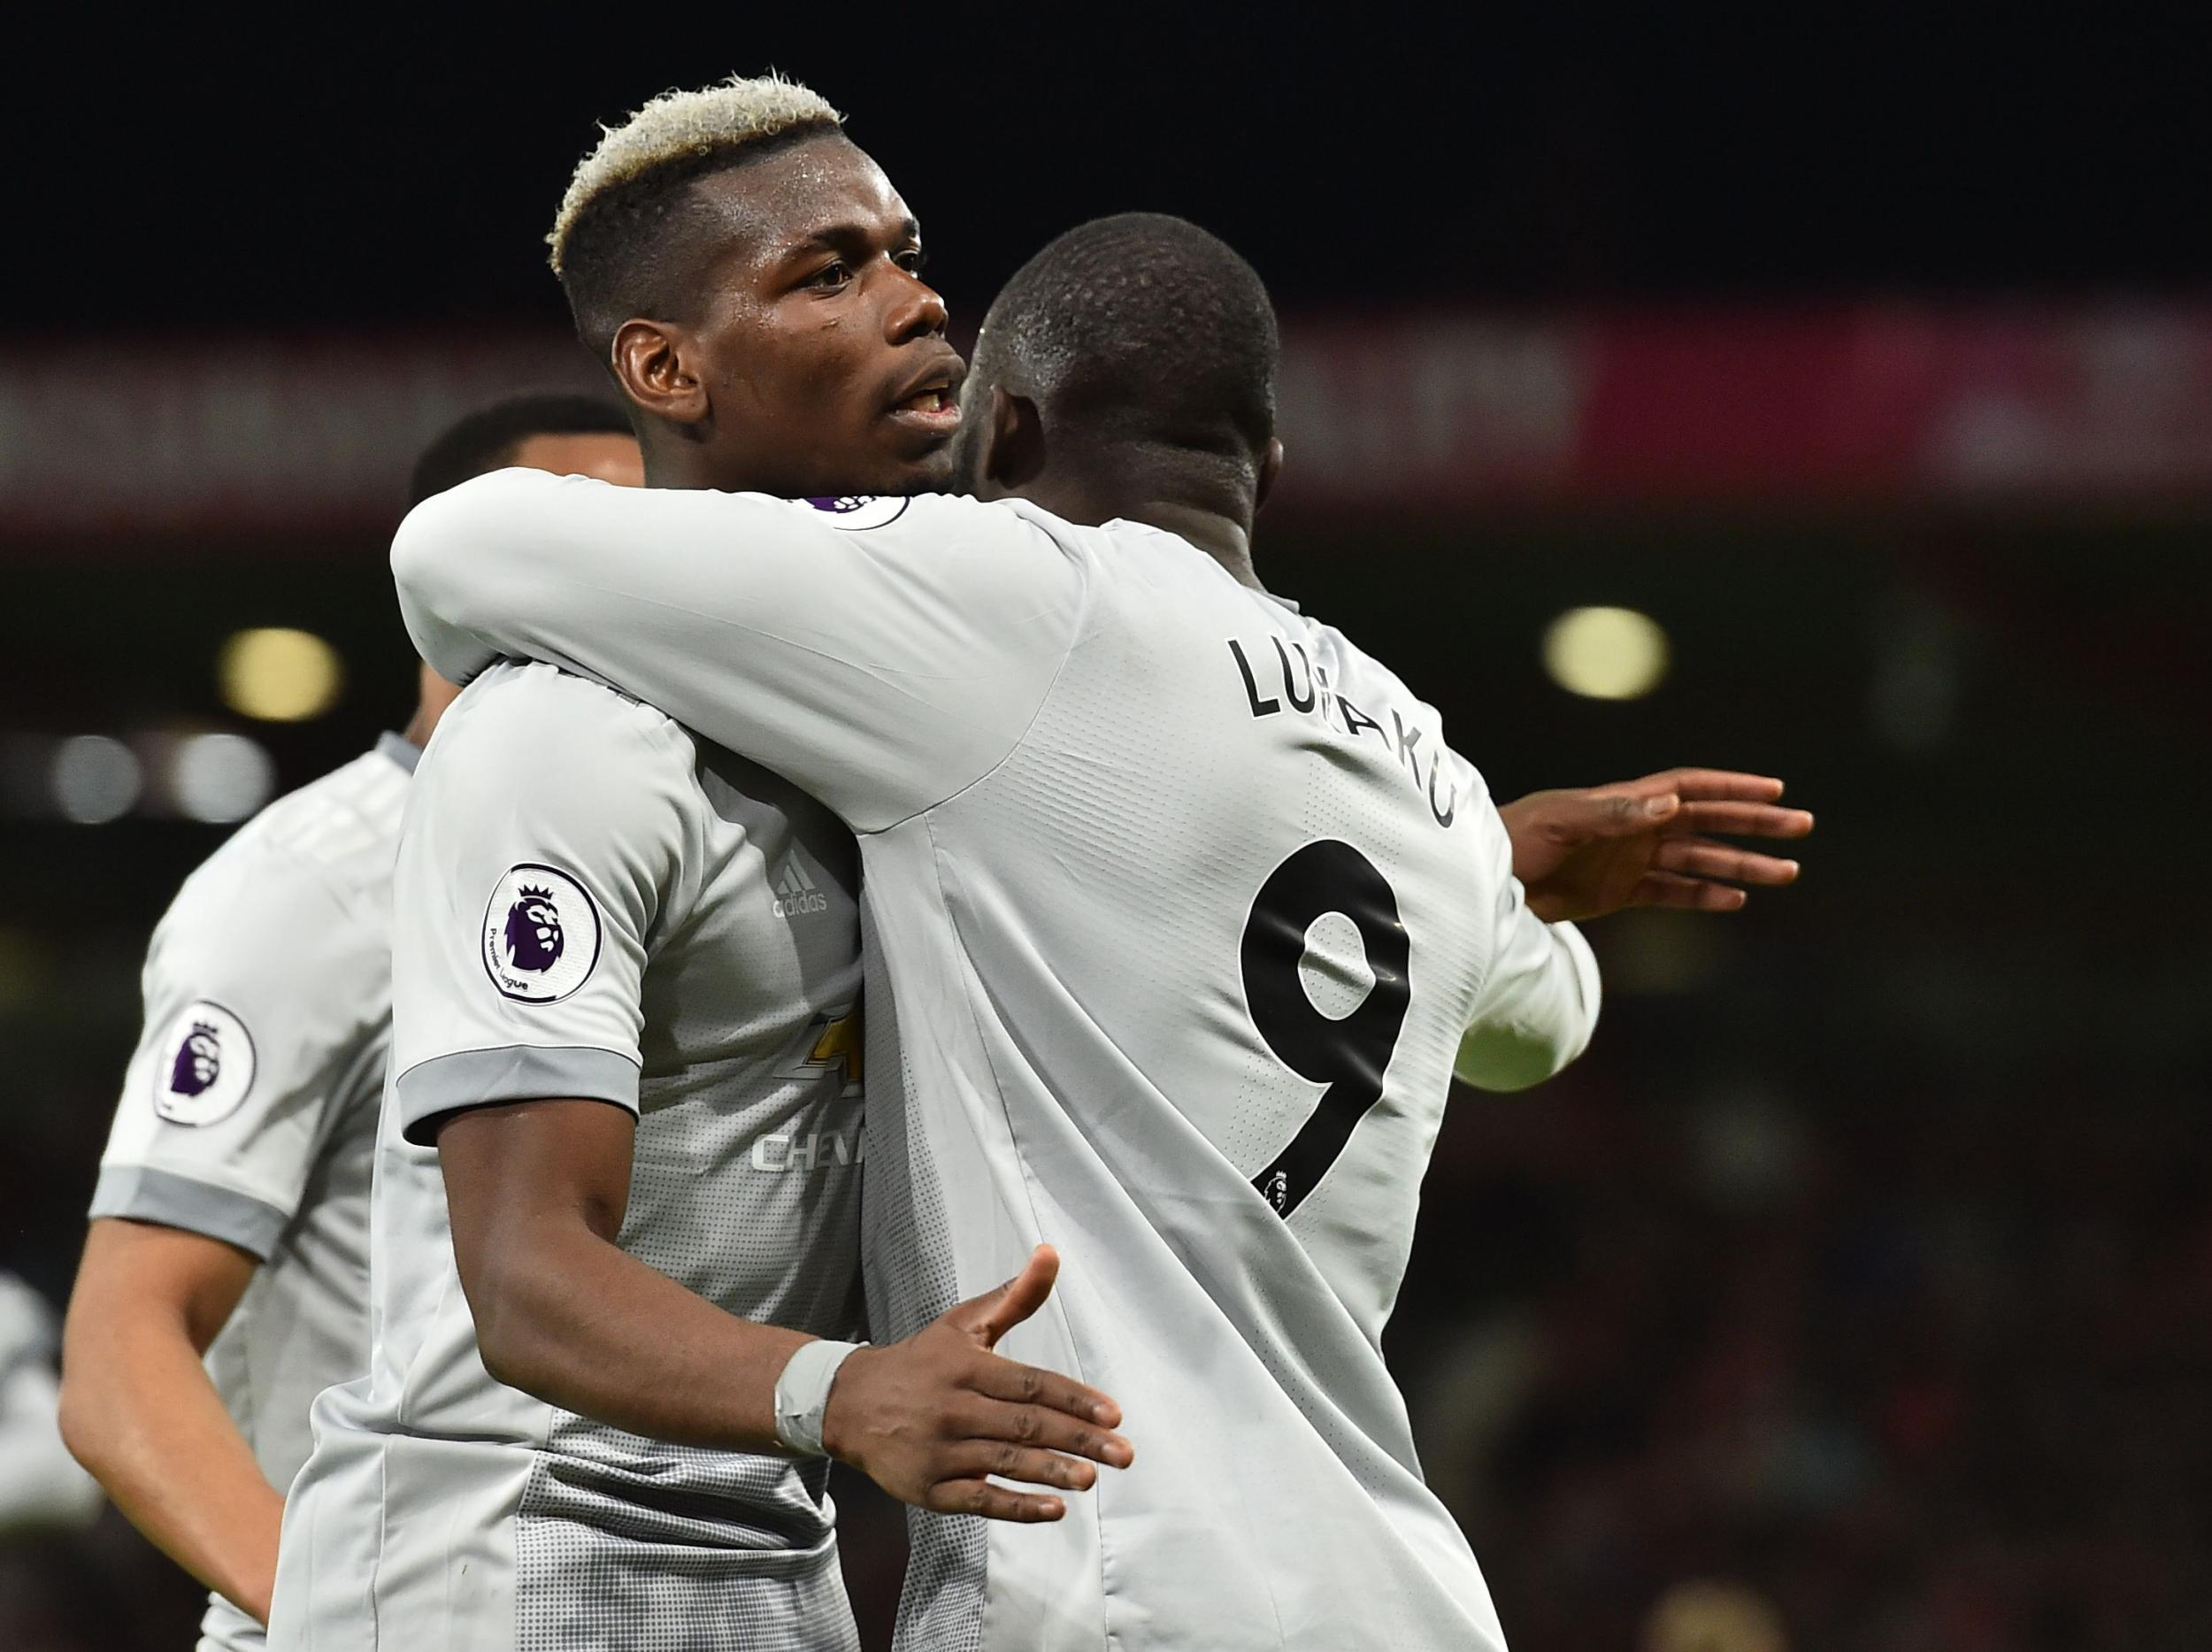 Love Animated Wallpaper For Mobile Paul Pogba Wallpapers 2018